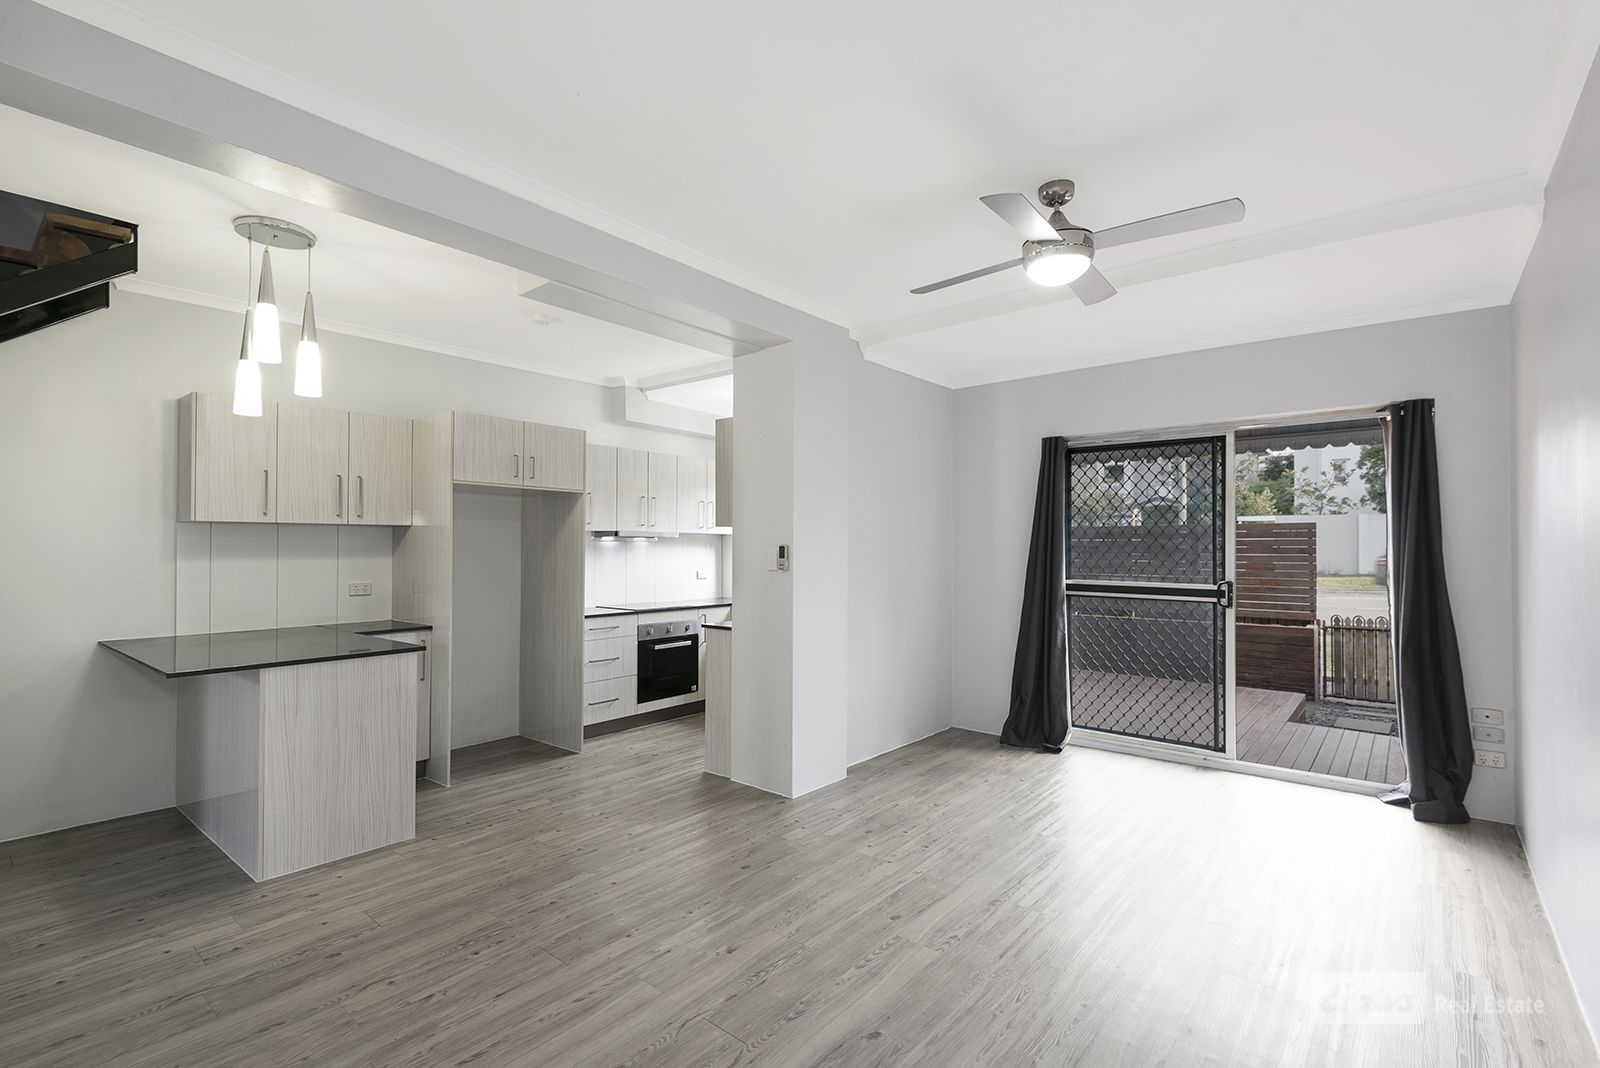 3/19 Nitawill St, Everton Park QLD 4053, Image 1